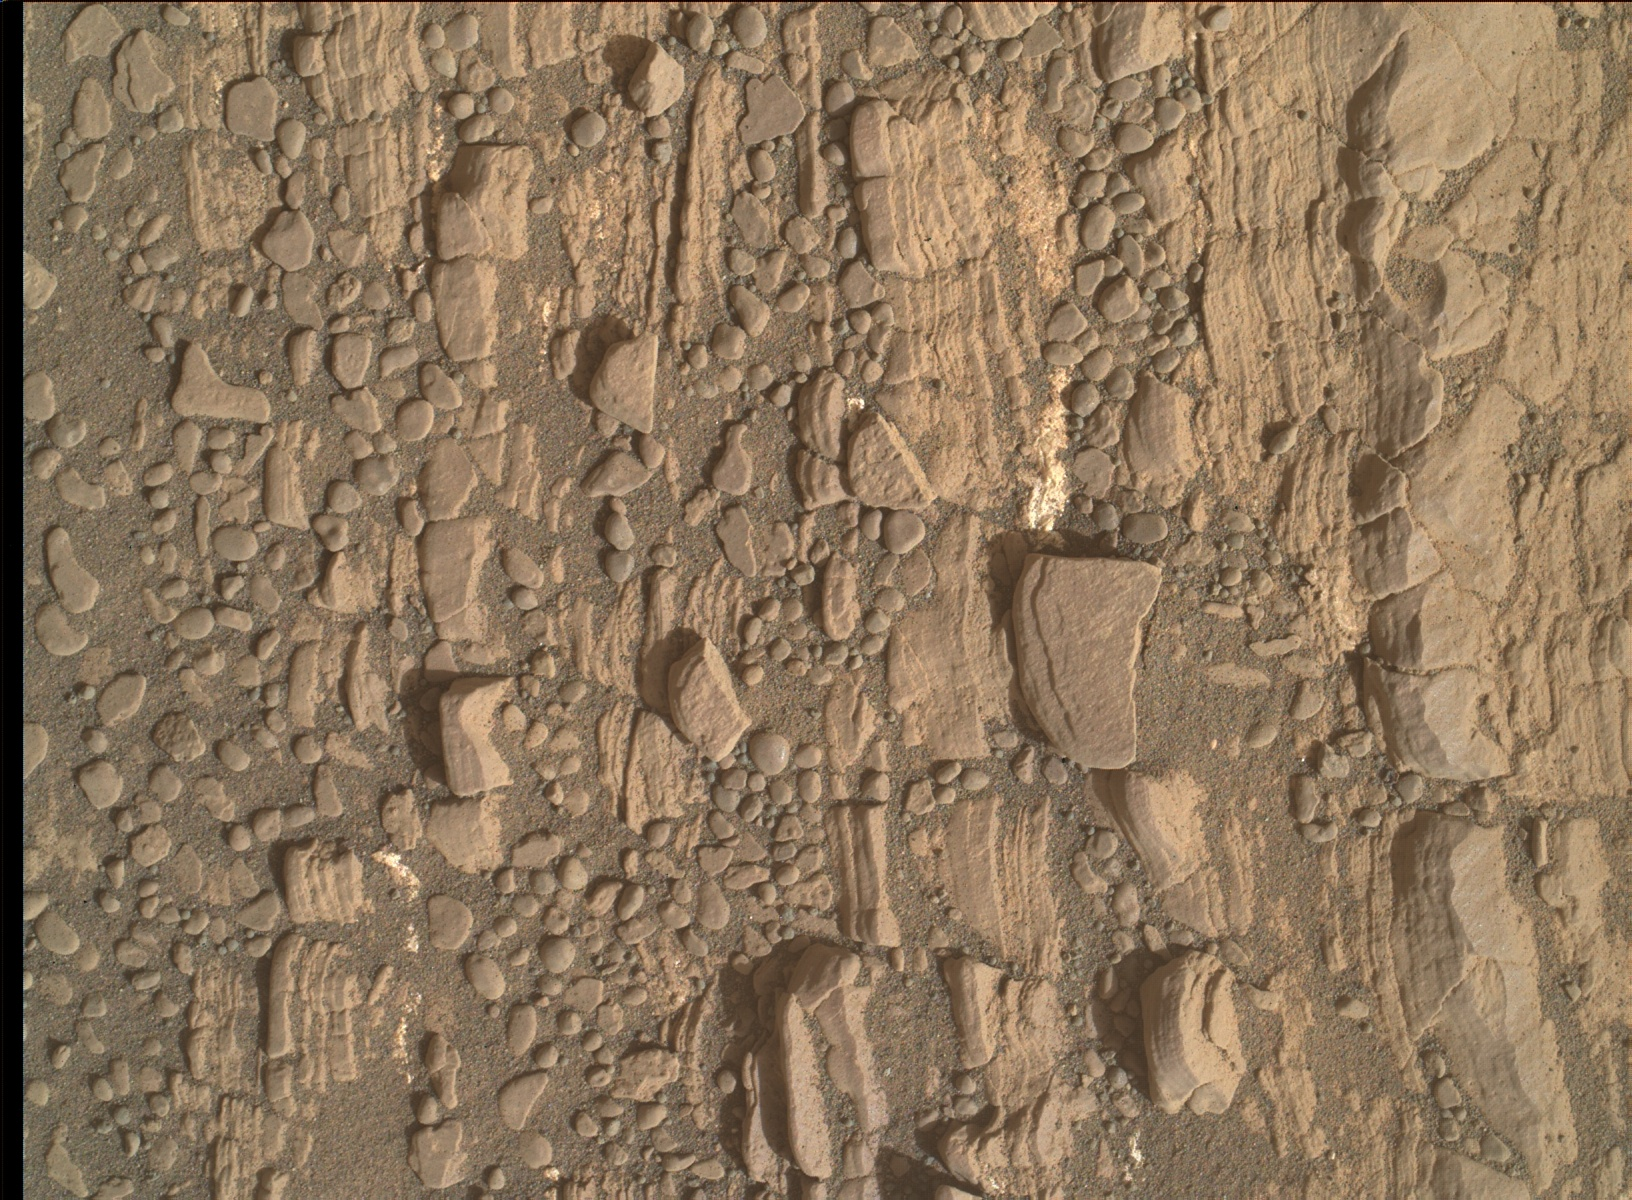 Nasa's Mars rover Curiosity acquired this image using its Mars Hand Lens Imager (MAHLI) on Sol 2424